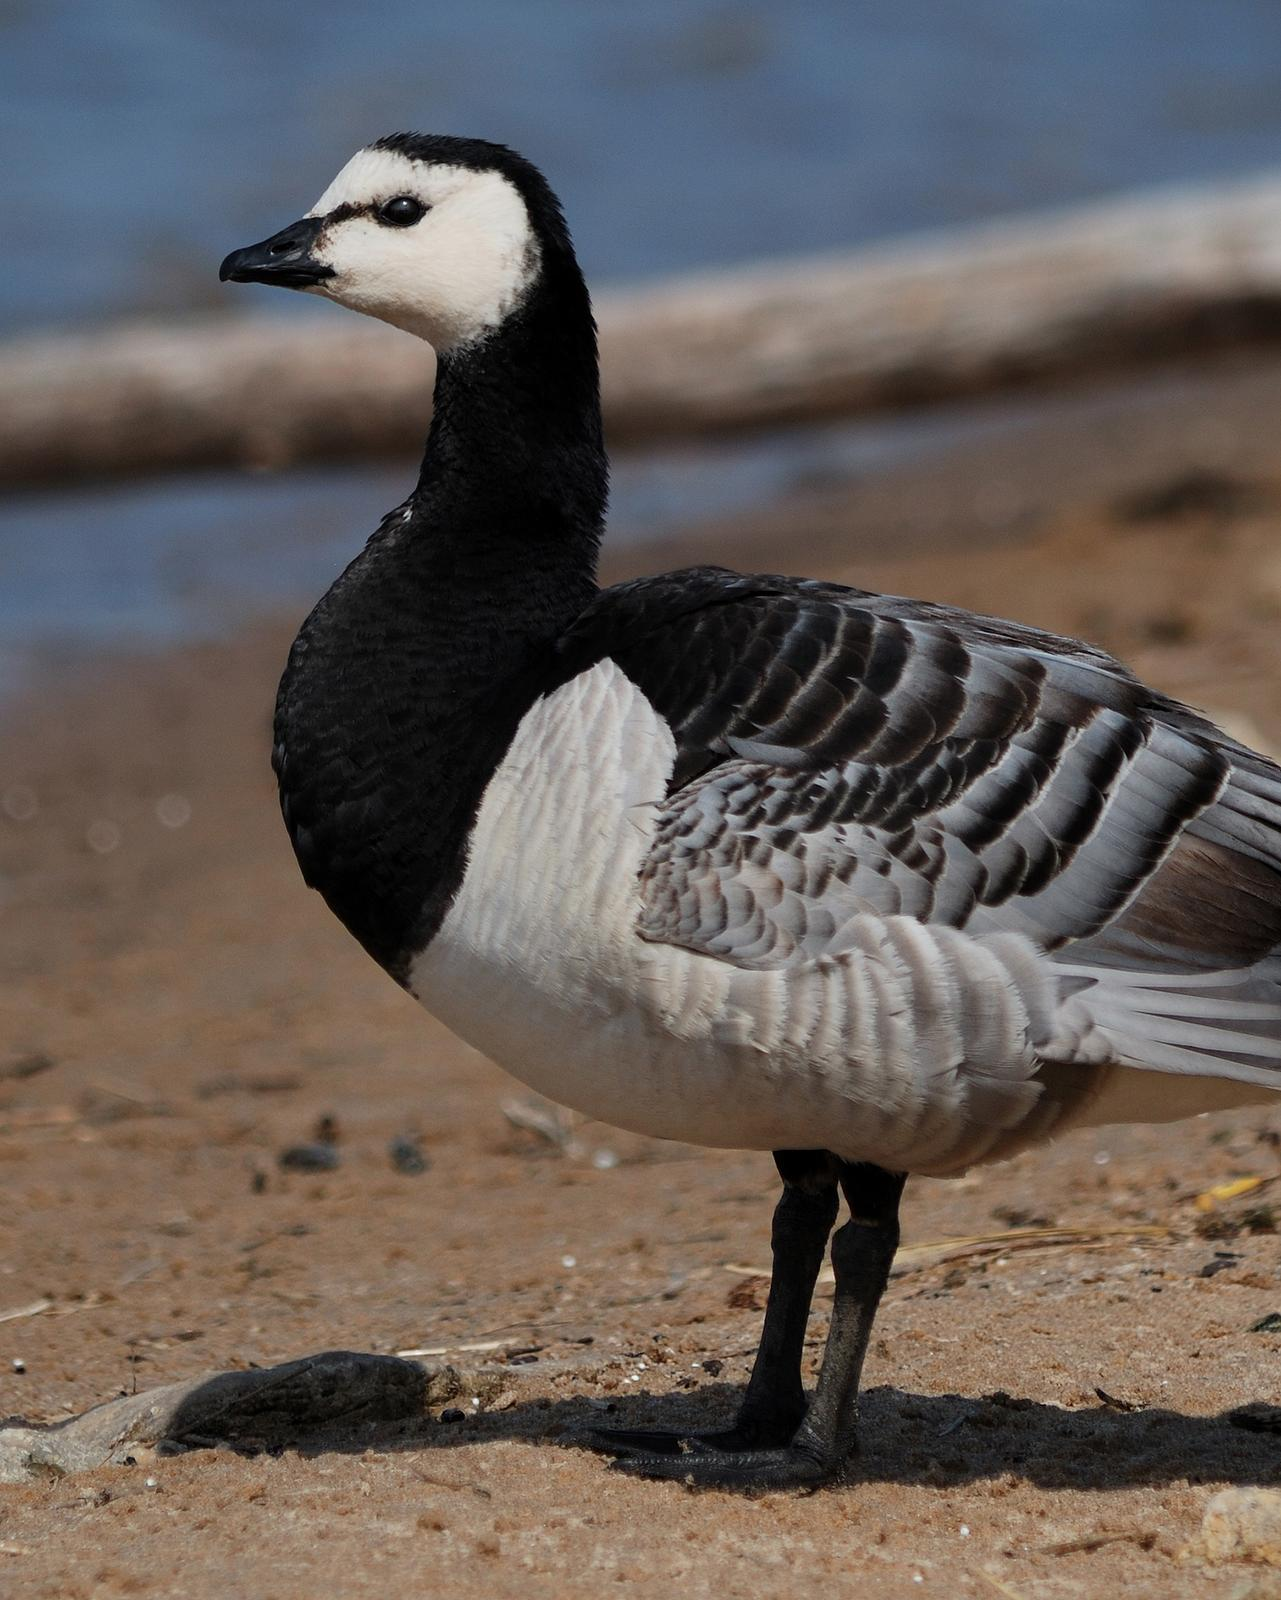 Barnacle Goose Photo by Mark Blassage